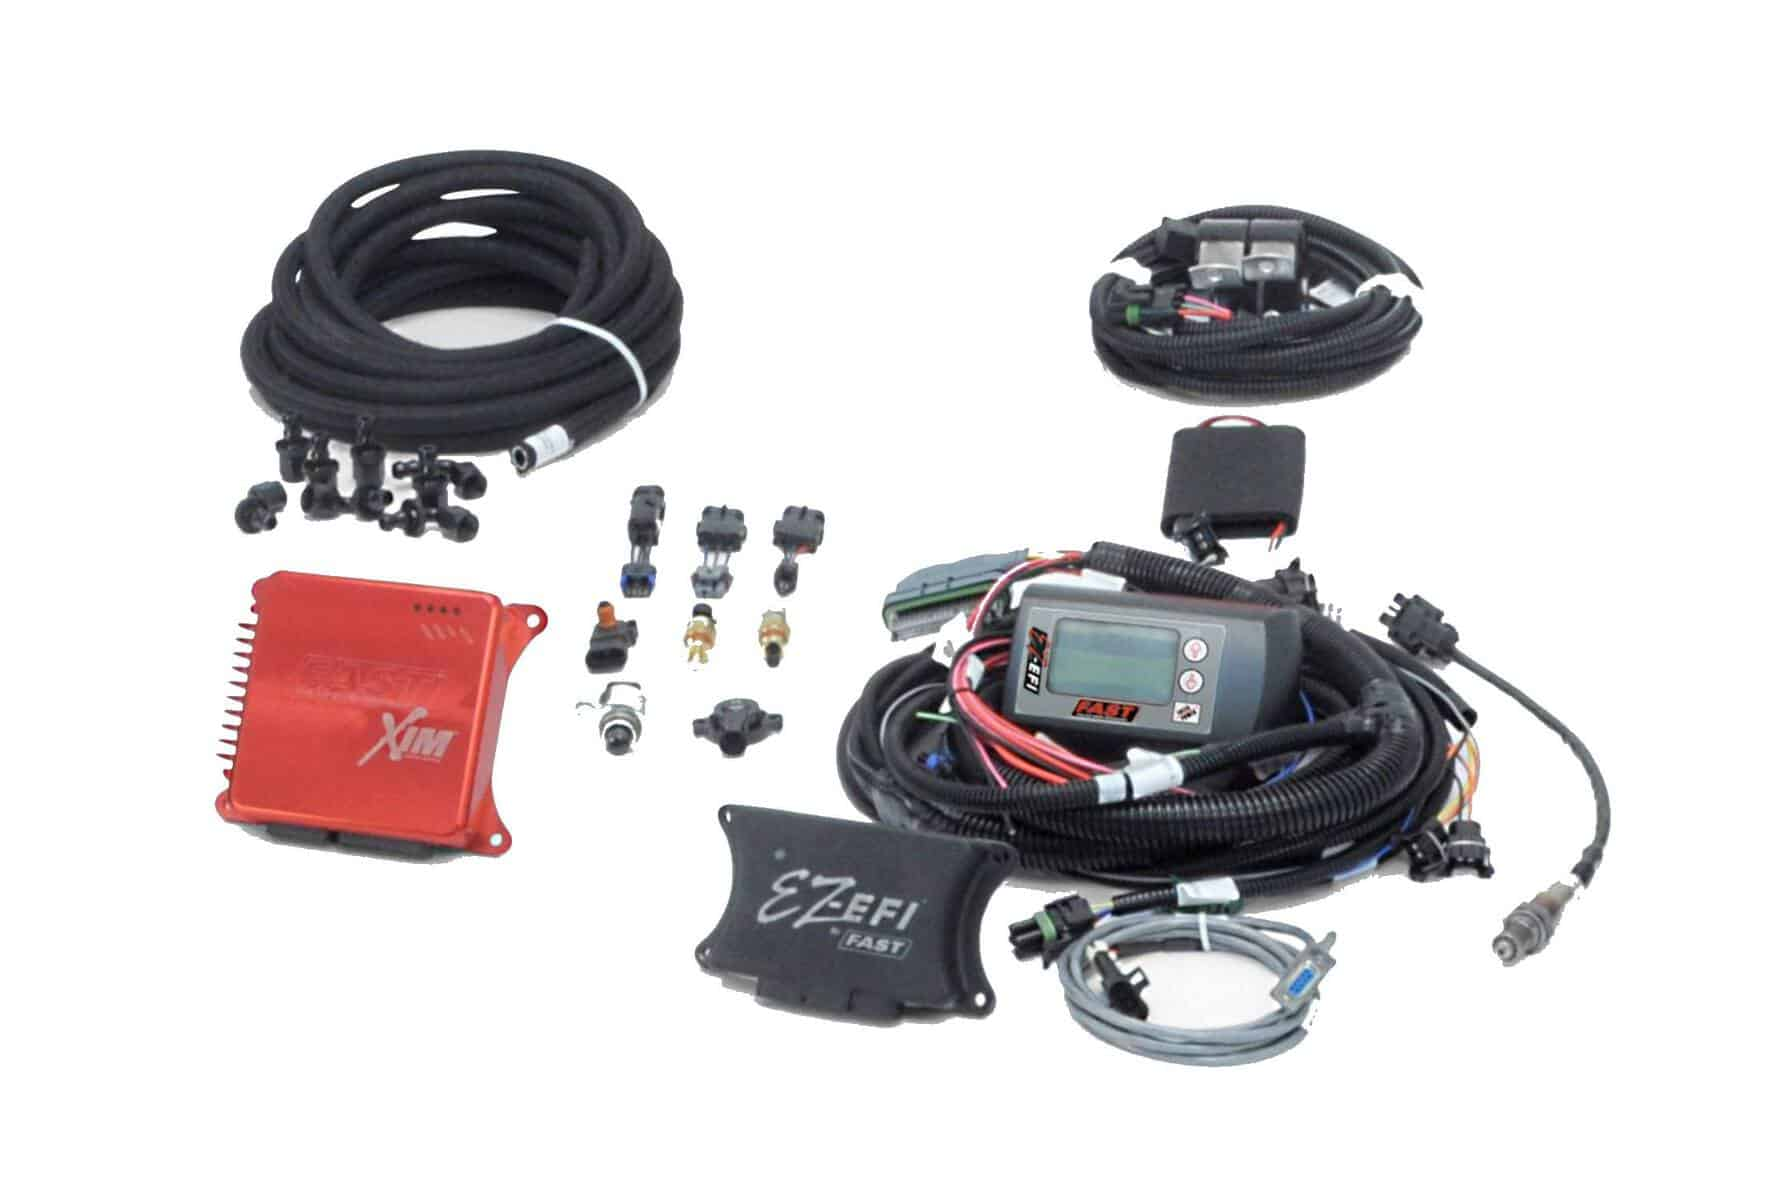 FAST LS EZ EFI with XIM Ignition Controller | Three Pedals